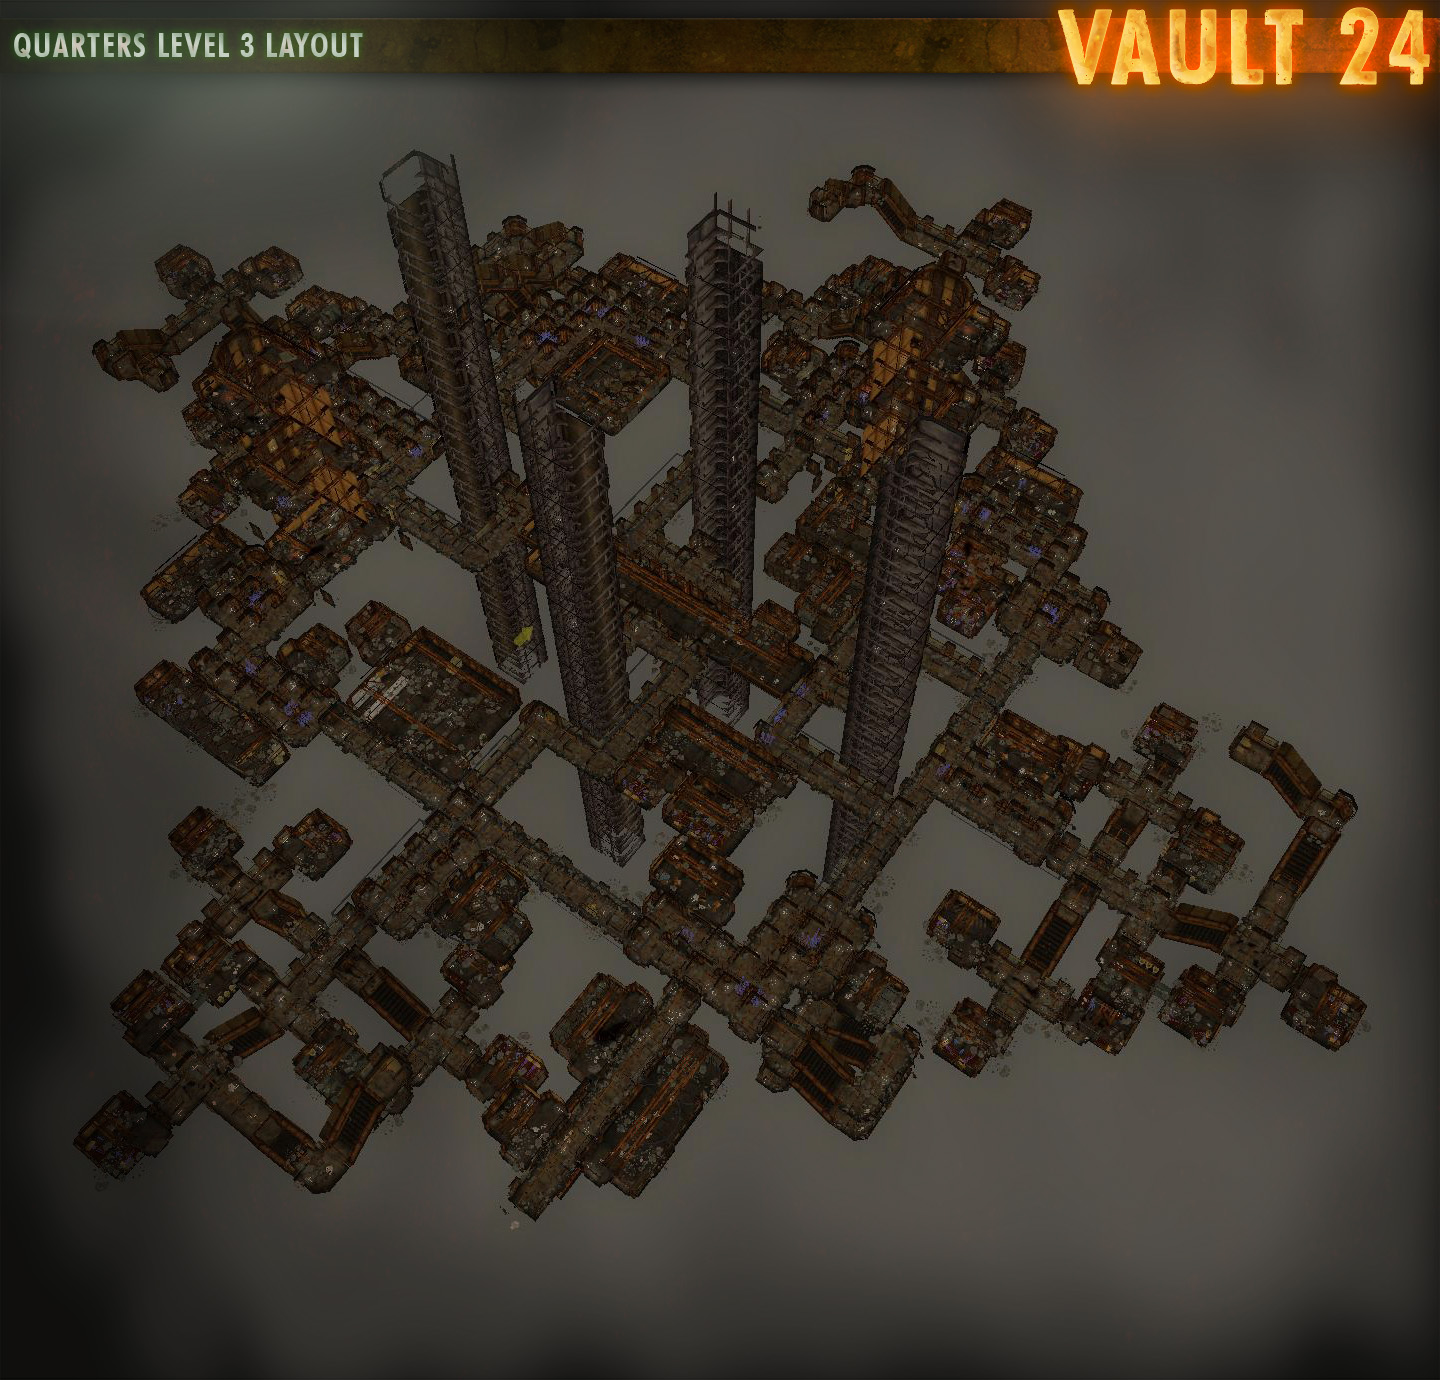 levels layout image vault 24 mod for fallout new vegas